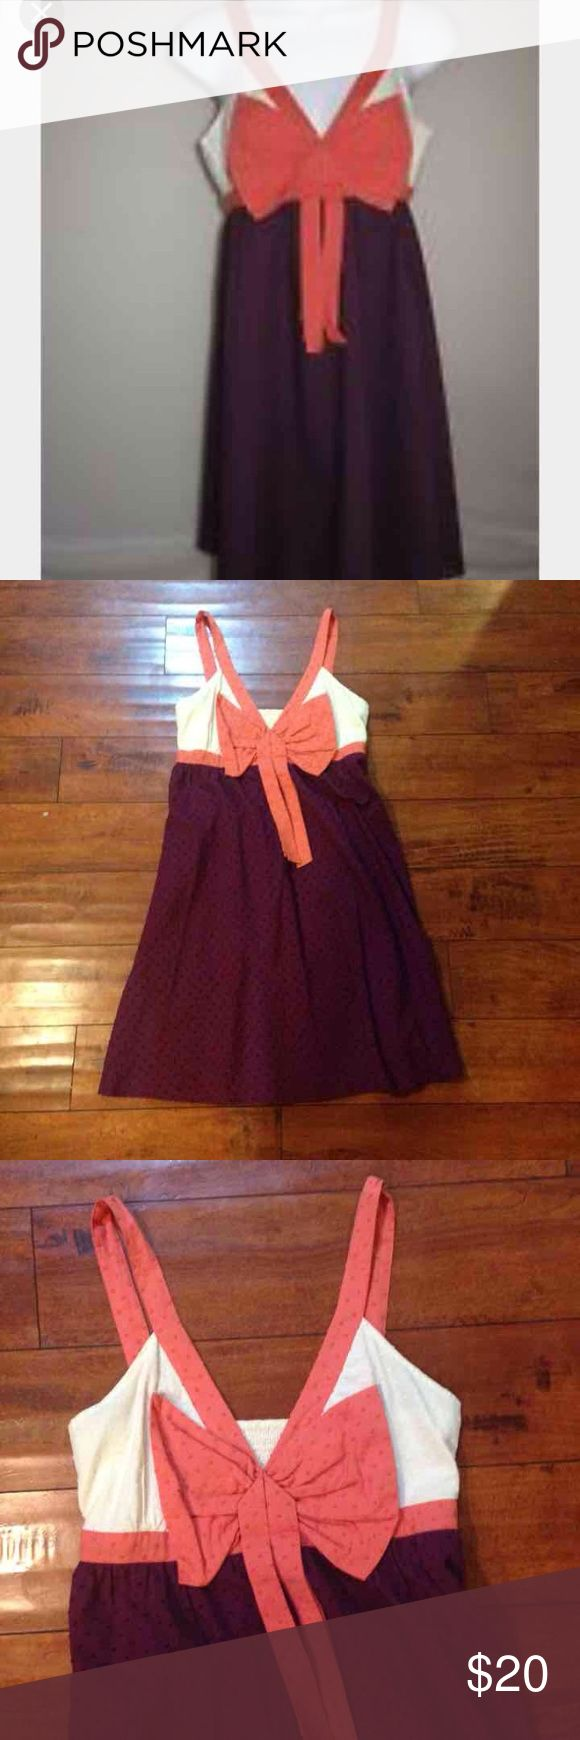 Anthropology Dress Like new condition Anthropologie Dresses Mini